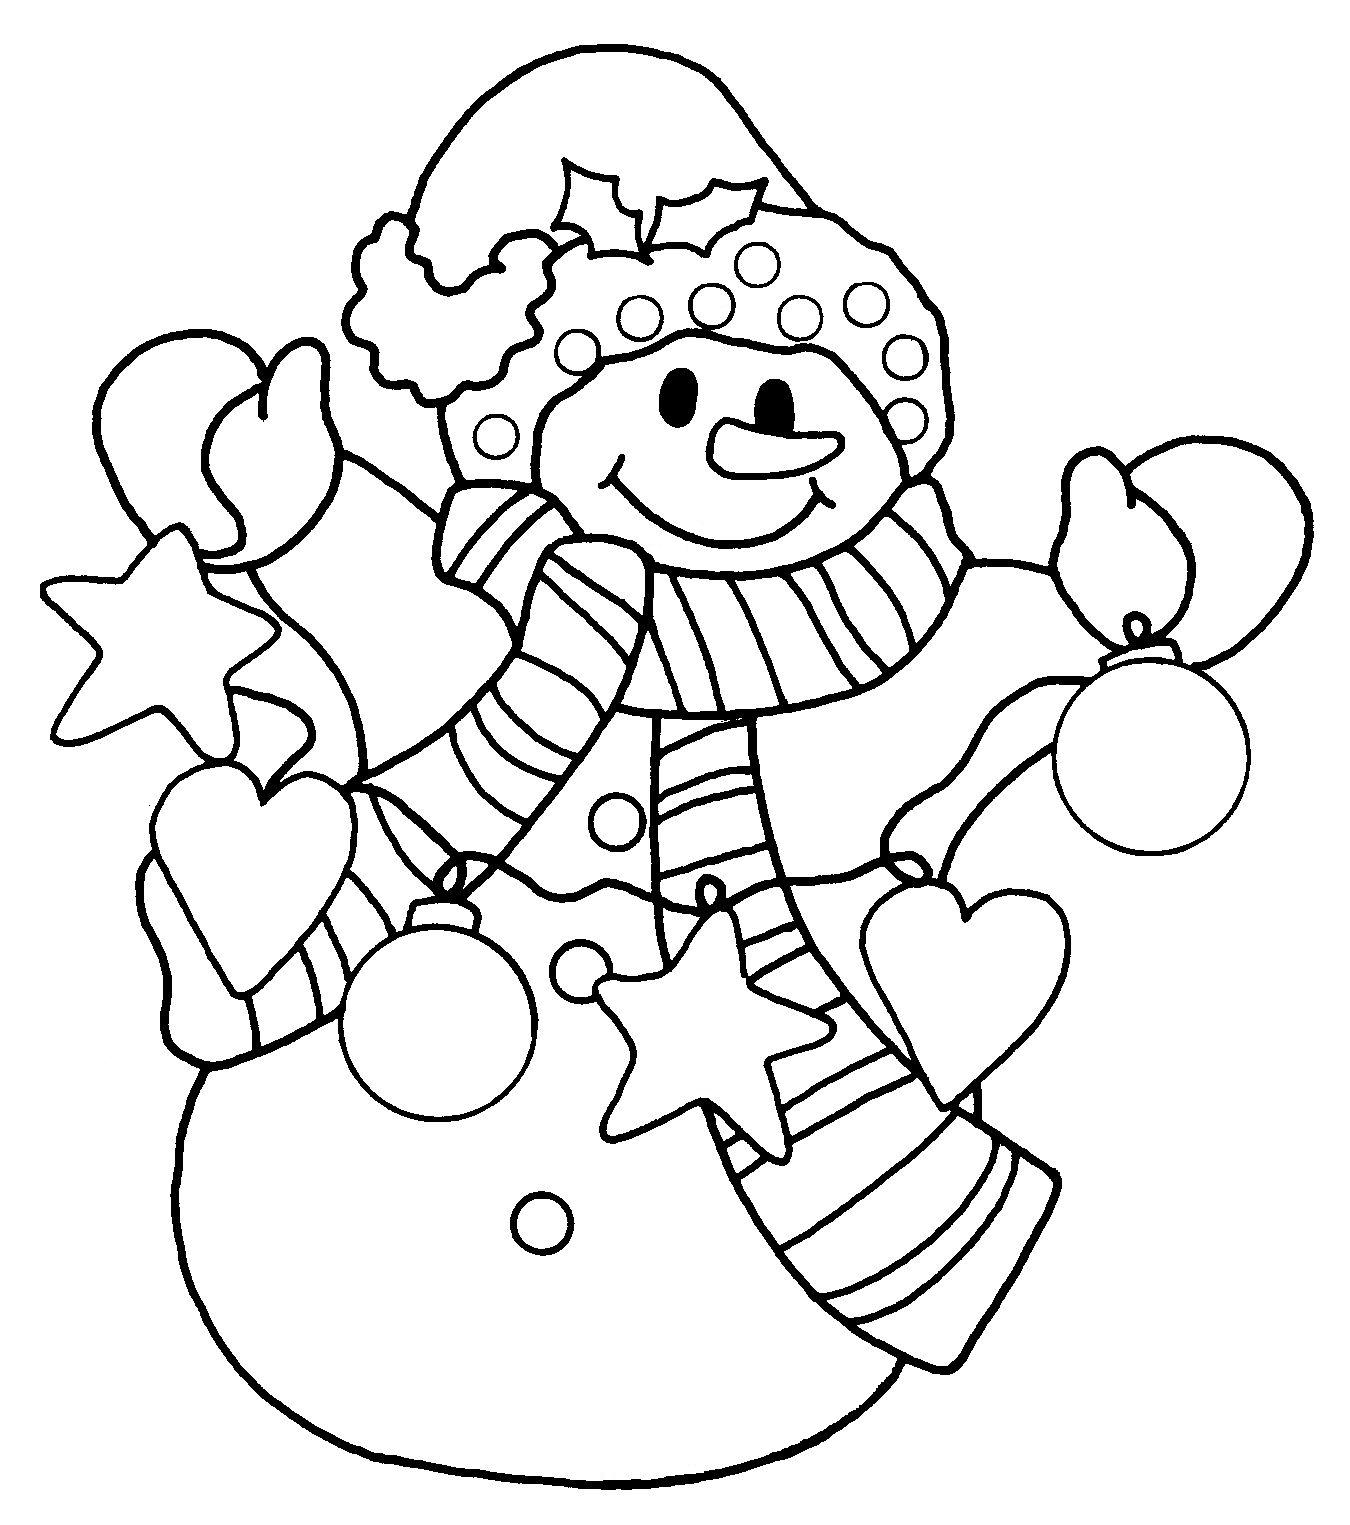 Dz doodles digital stamps oodles of doodles news freebie for Coloring pages of snowman